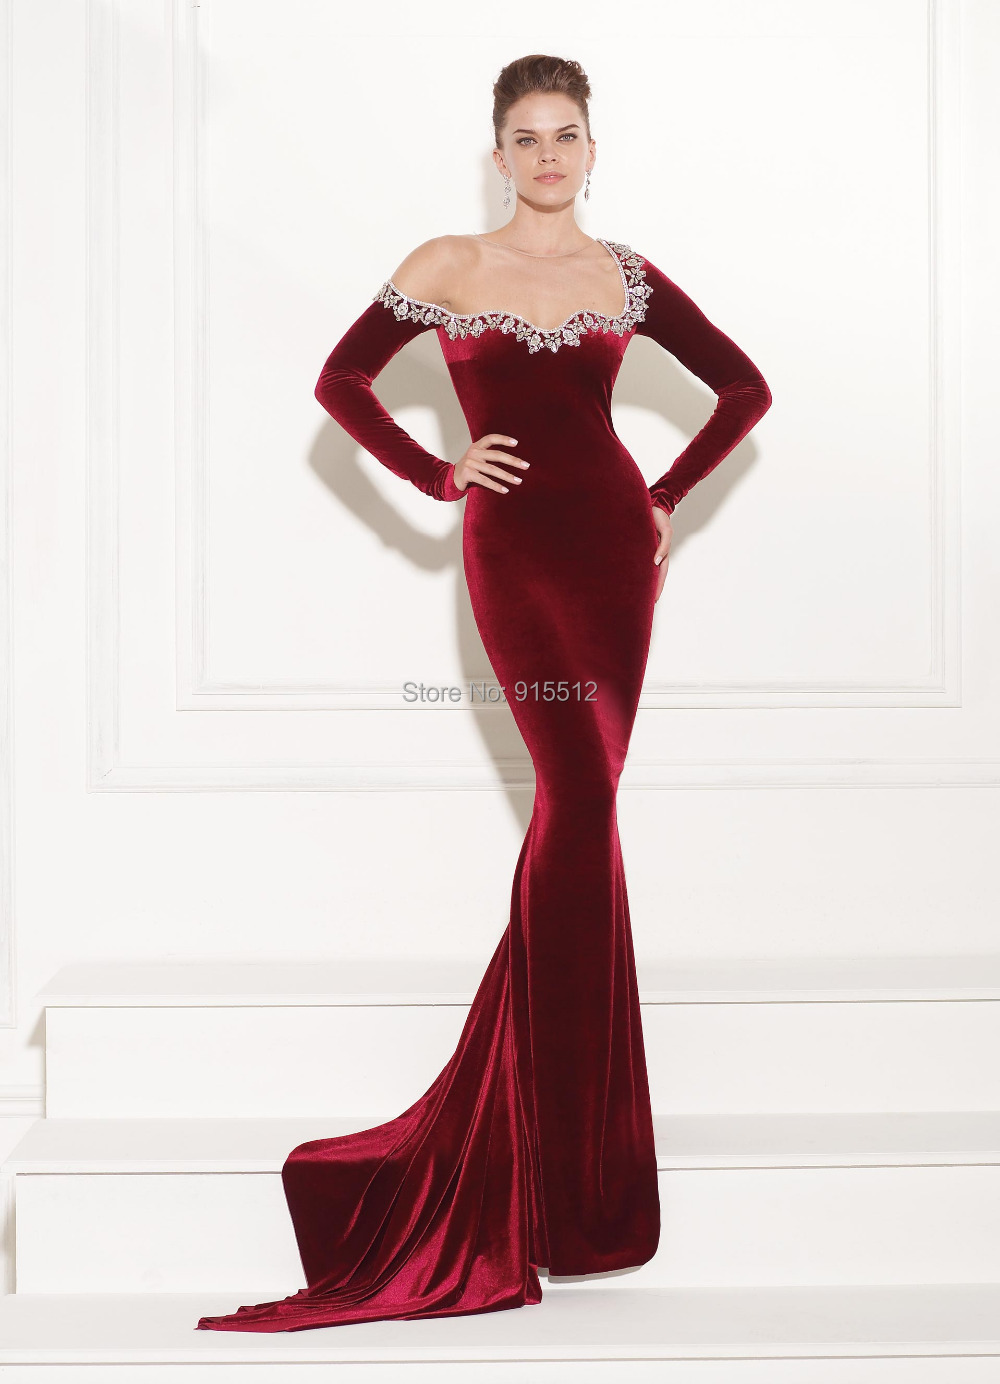 74c1341b1cf6 Special Prom Mature Lady Scoop Neckline Long Sleeve Evening Gown Models  Long Red Velvet Dress-in Prom Dresses from Weddings & Events on  Aliexpress.com ...